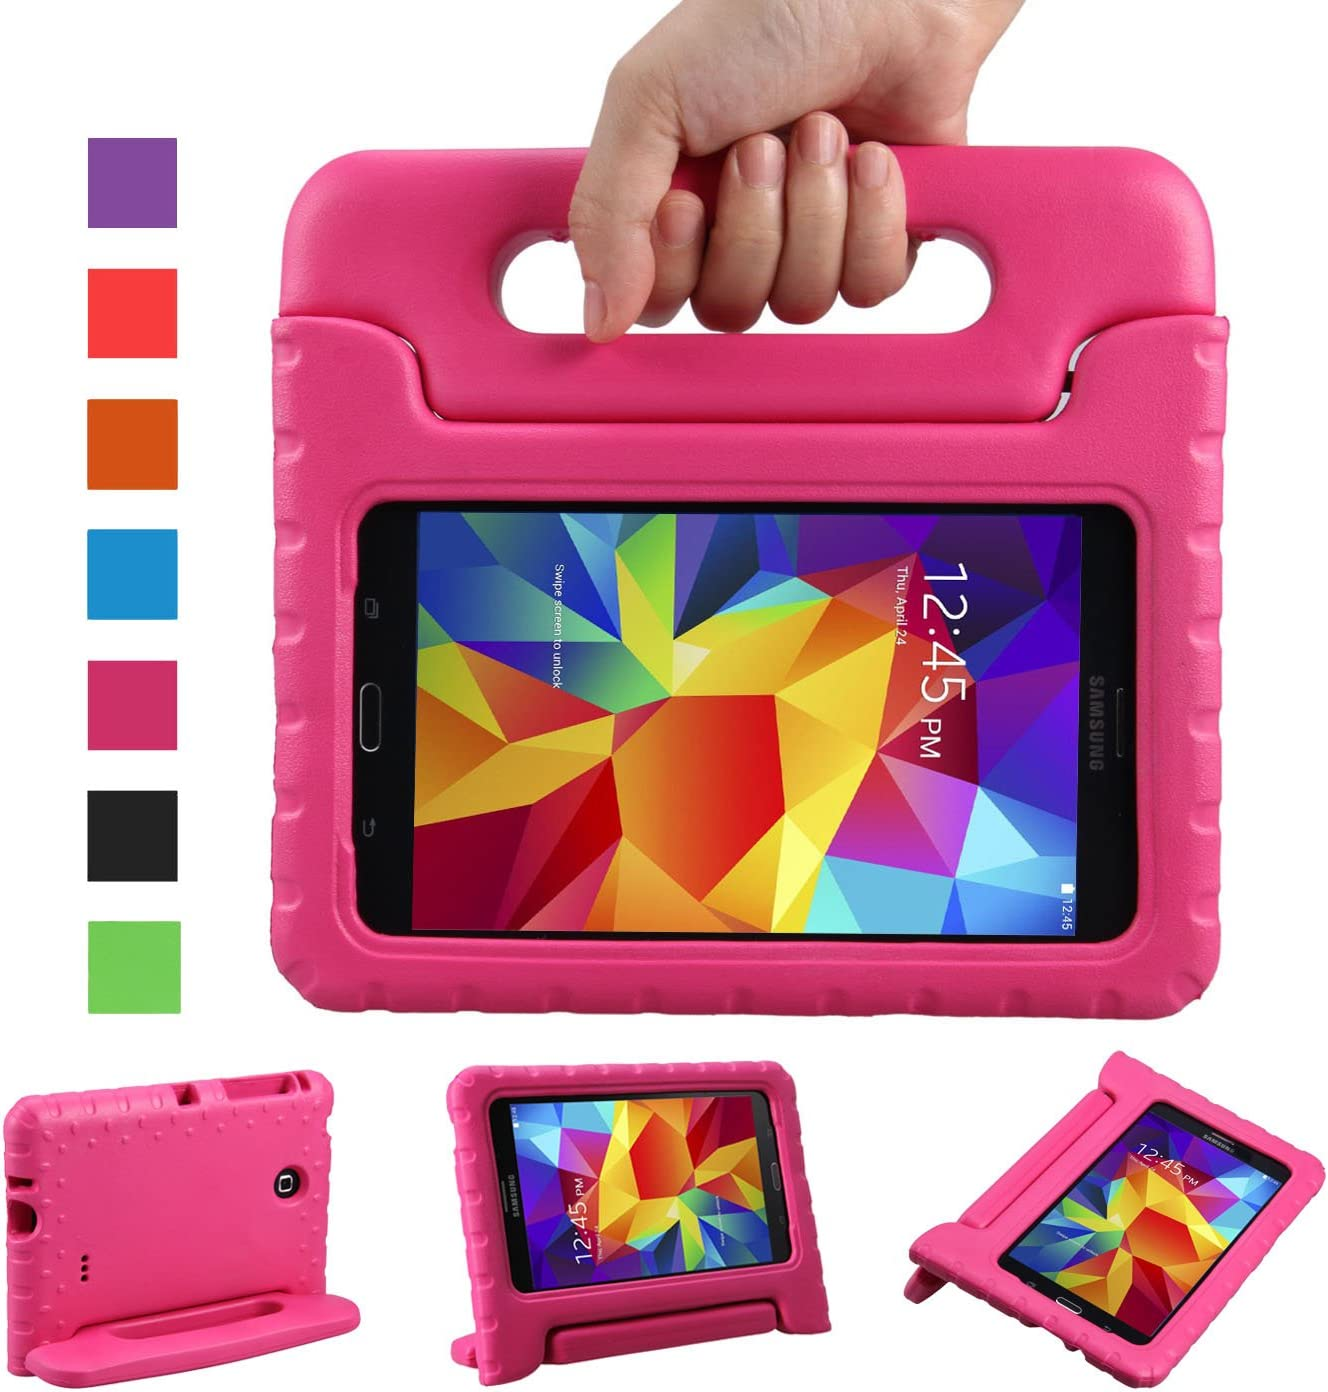 NEWSTYLE PT-646 Shockproof Light Weight Protection Handle Stand Kids Case for Samsung Galaxy Tab 4 7-inch SM-T230, SM-T231, SM-T235 - Rose